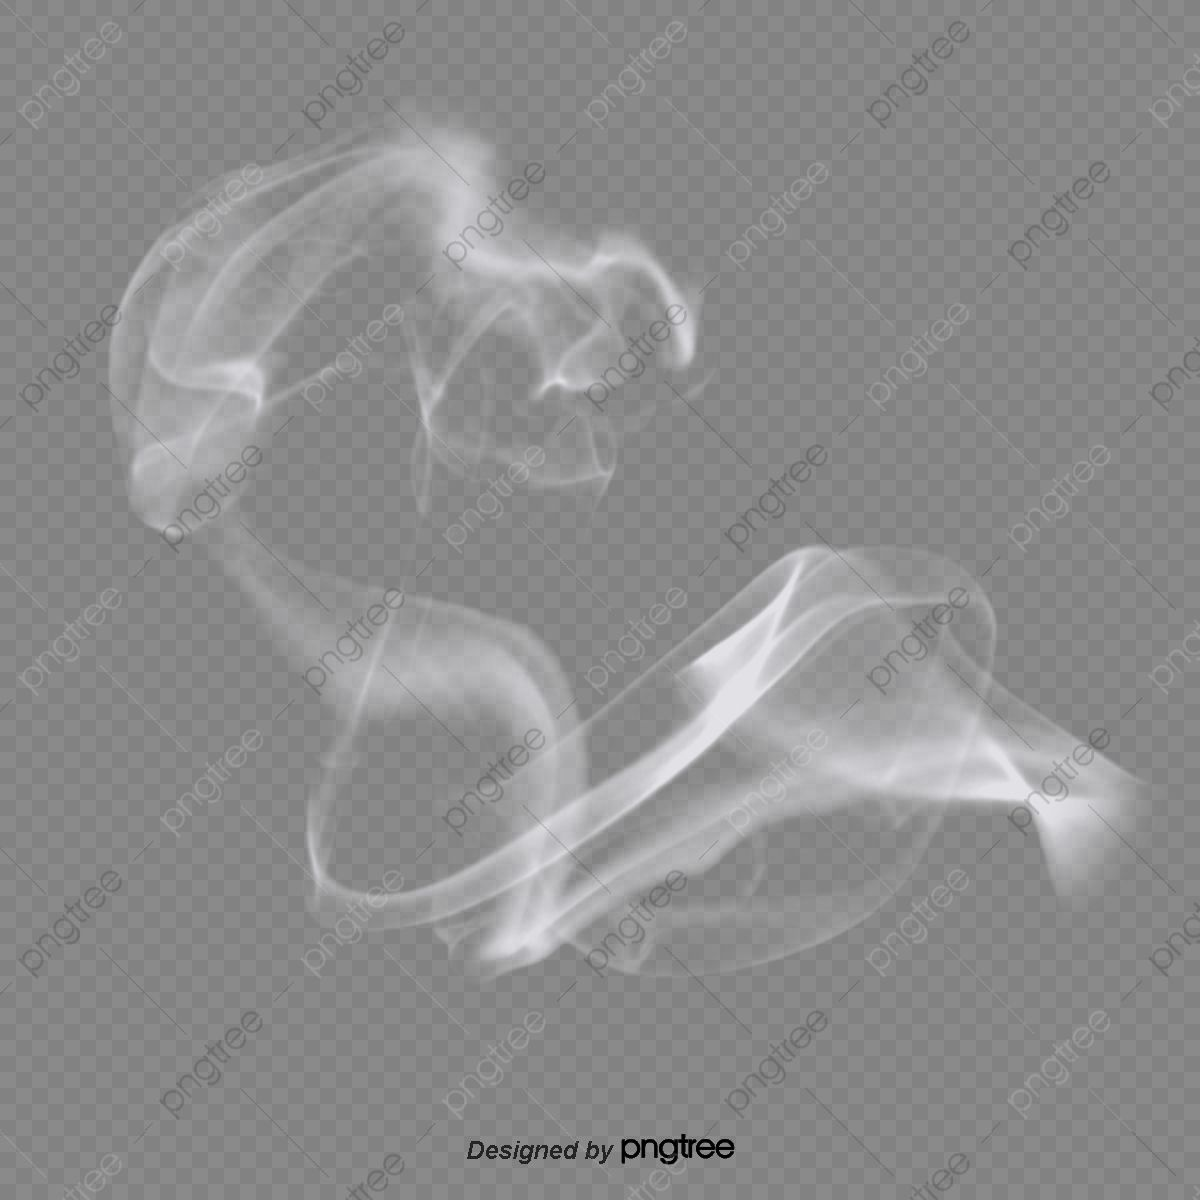 White Dreamy Smoke Element Element Diffuse White Png Transparent Clipart Image And Psd File For Free Download Smoke Background Font Illustration Fire Photography